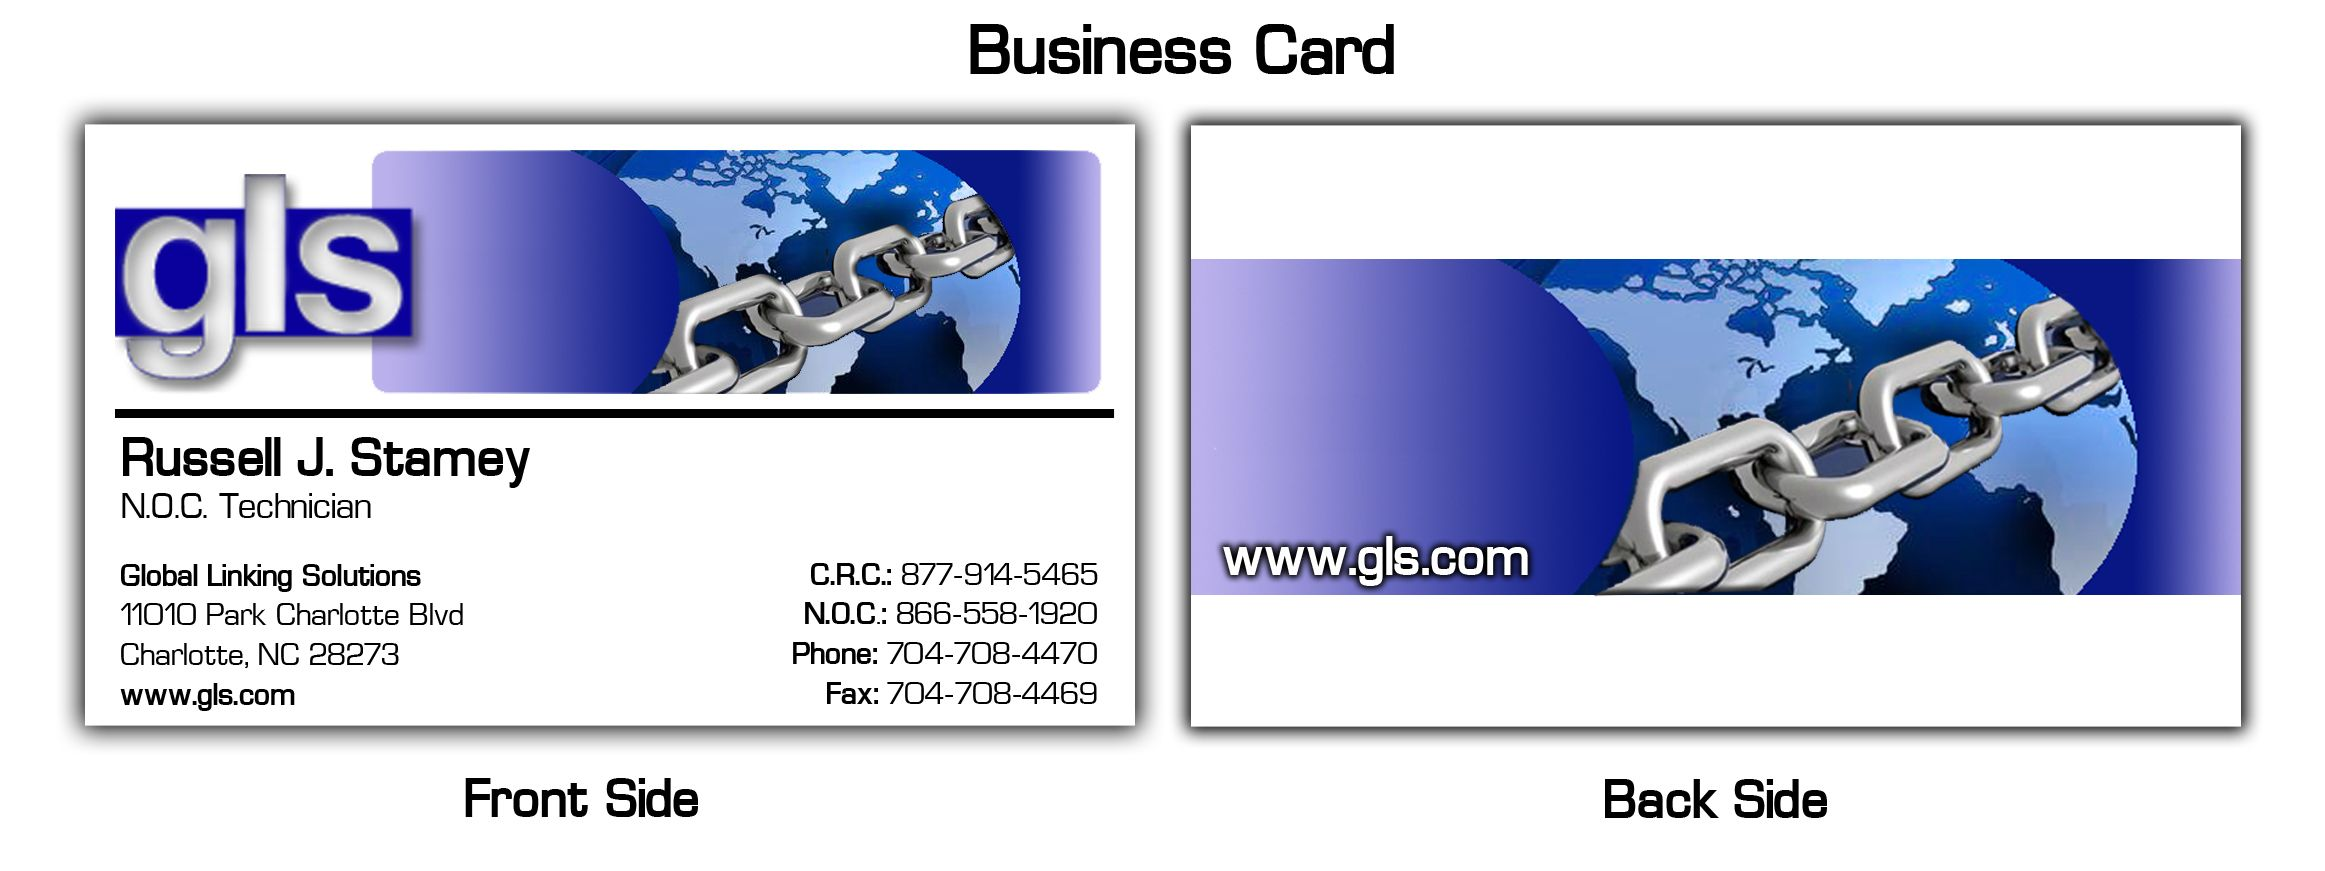 business card for global linking solutions